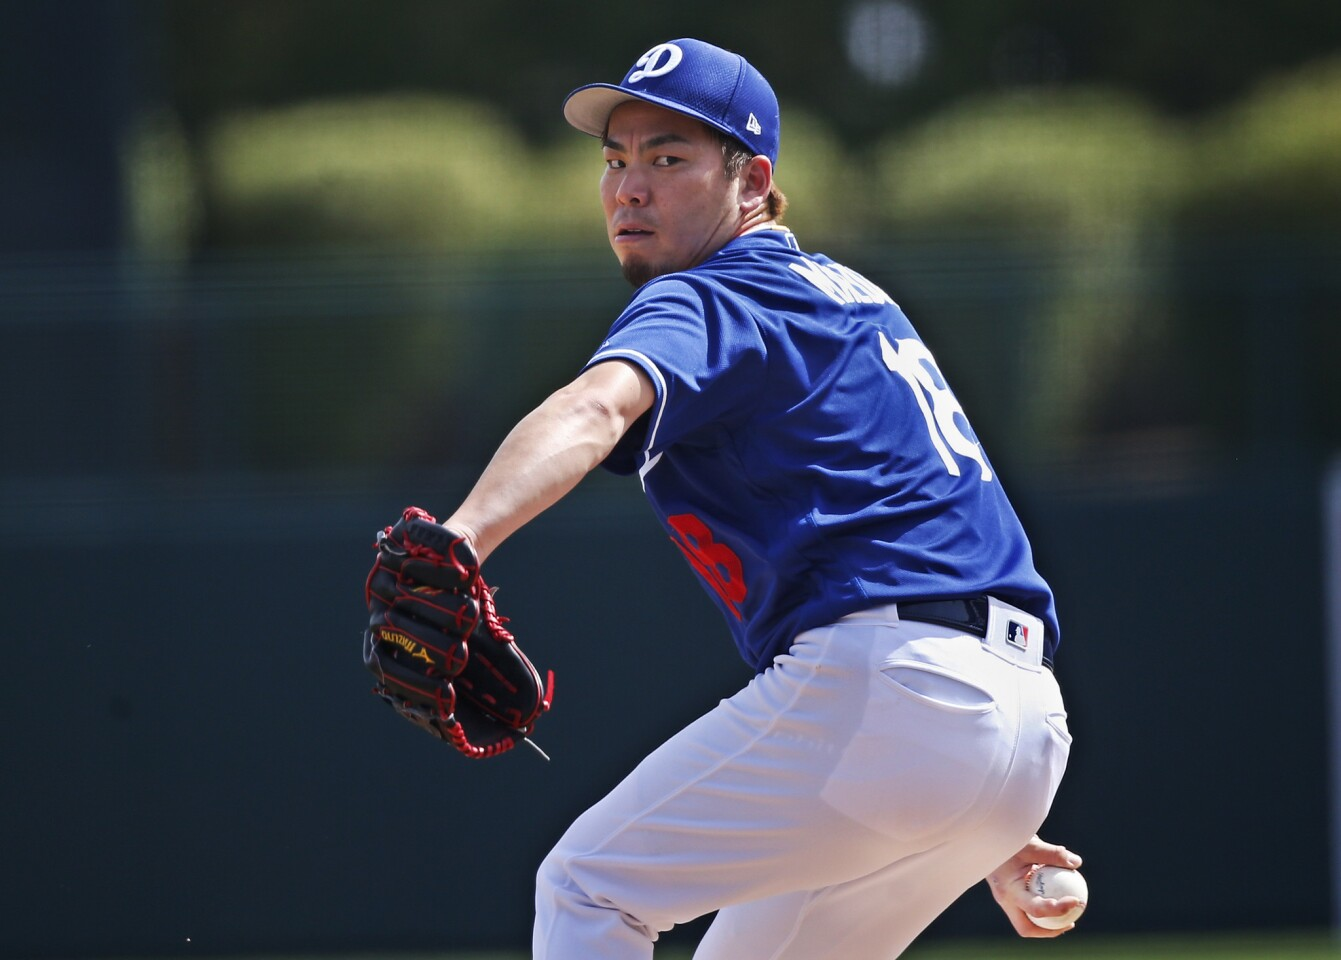 Los Angeles Dodgers pitcher Kenta Maeda pitches during a spring training baseball game against the Seattle Mariners Saturday, March 9, 2019, in Phoenix. (AP Photo/Sue Ogrocki)